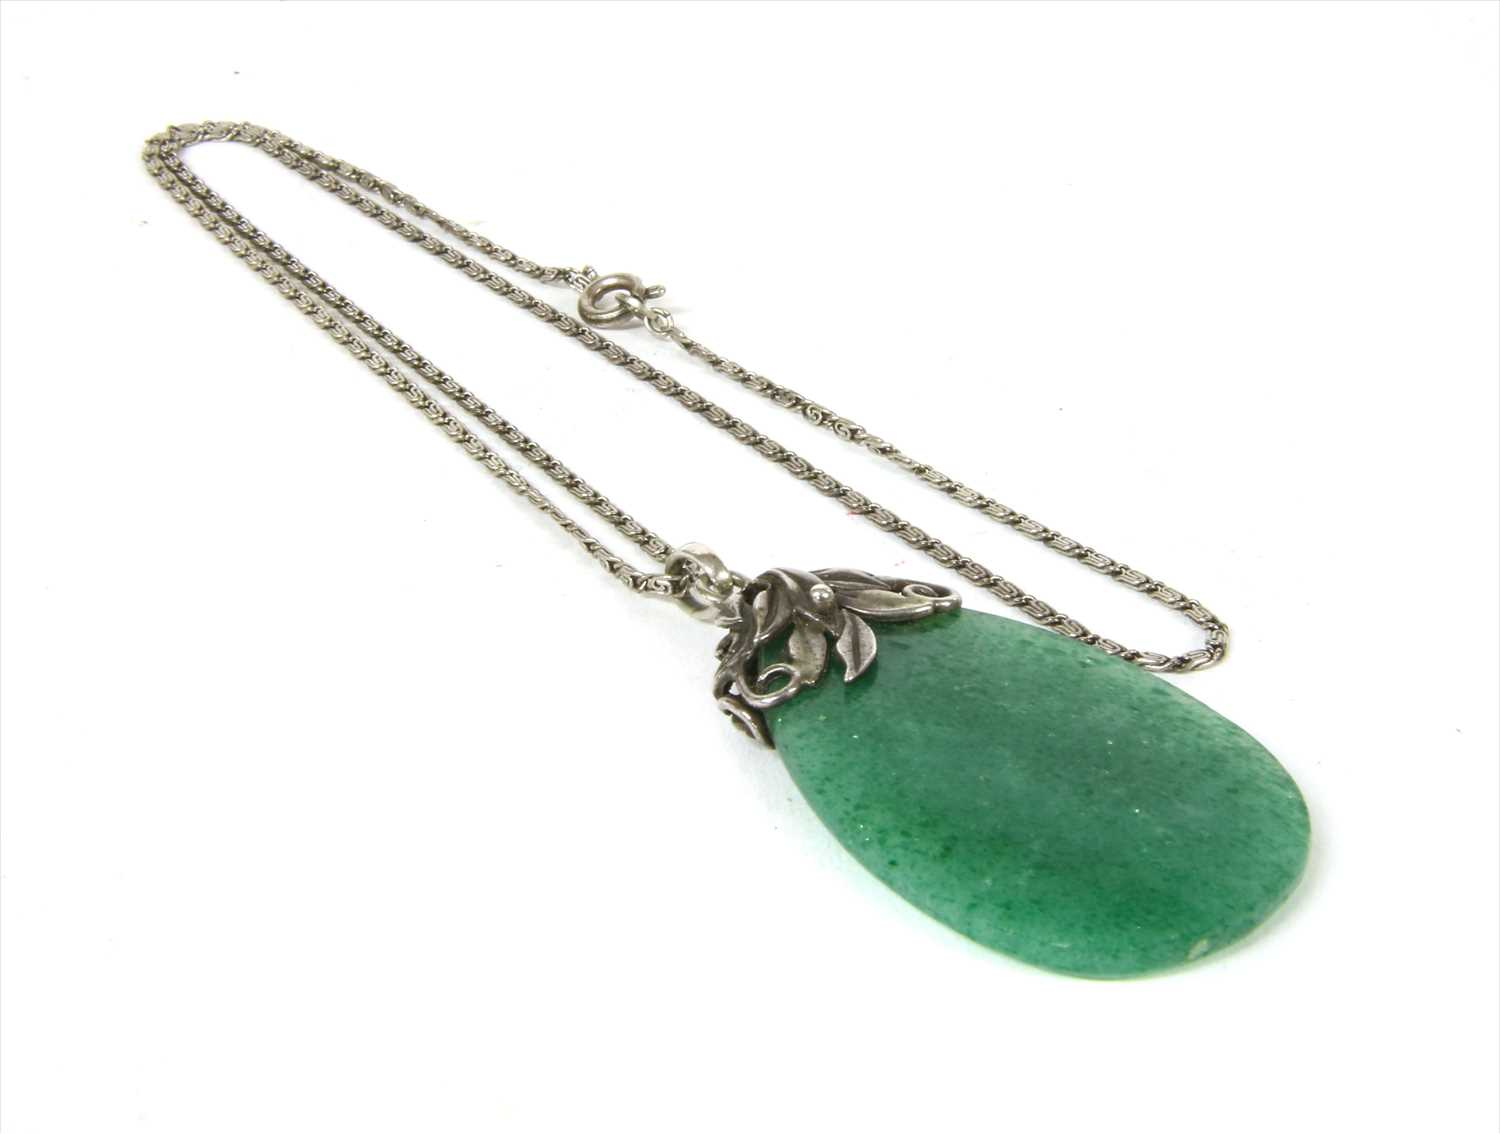 Lot 19-An Arts & Crafts silver aventurine quartz pendant